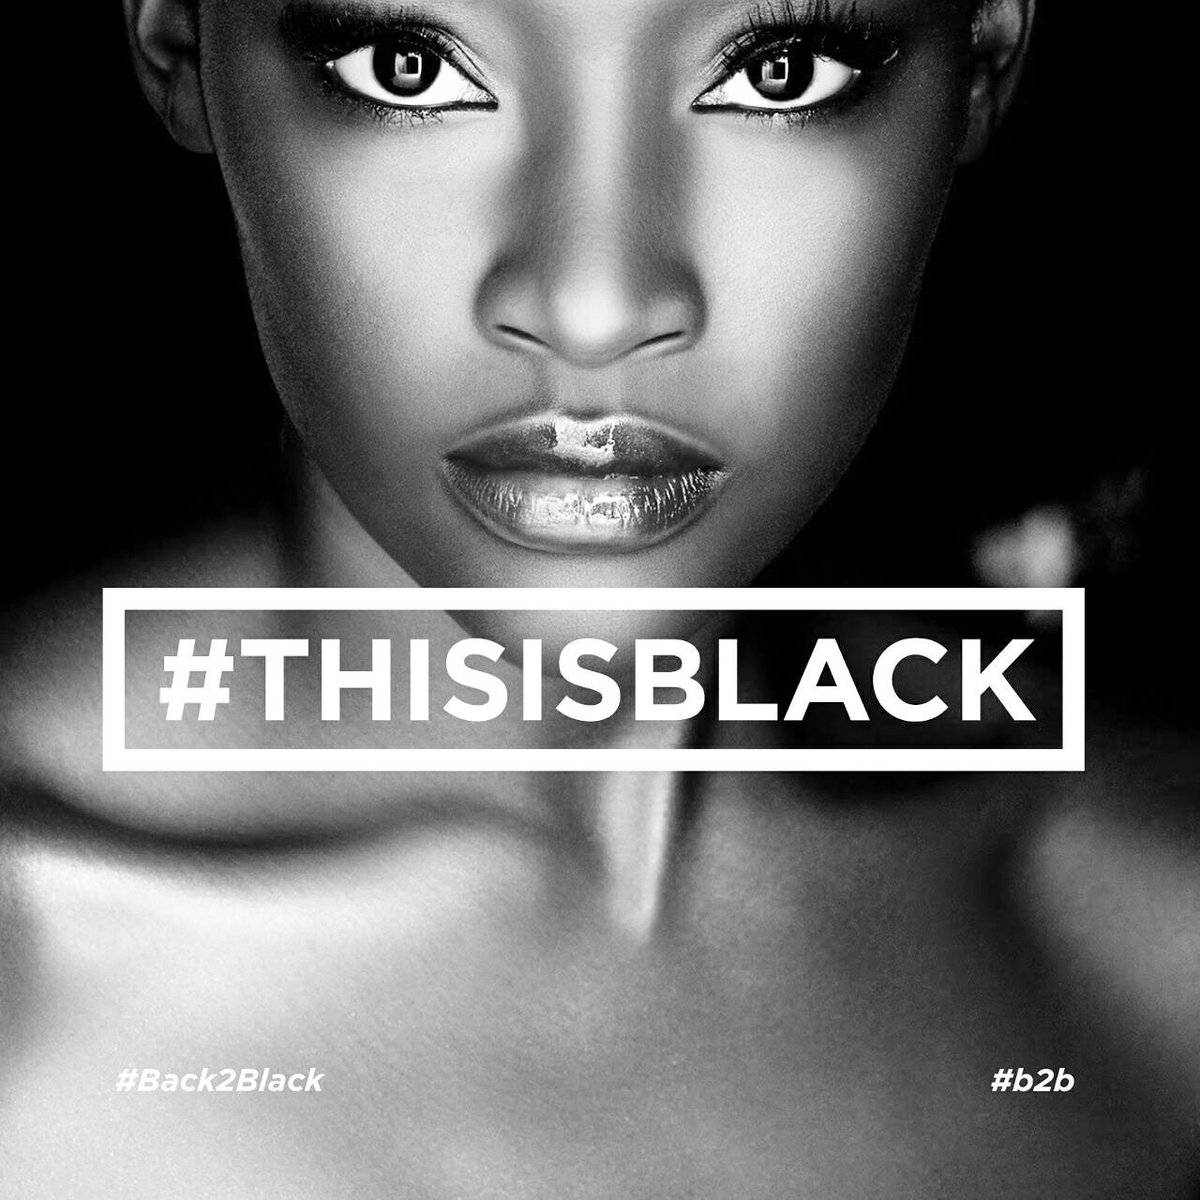 We are going to have A LOT of girls in the club this weekend. You don't wanna miss this @VIPRoom_URBAN #Back2Black https://t.co/DN9gR0jGZg